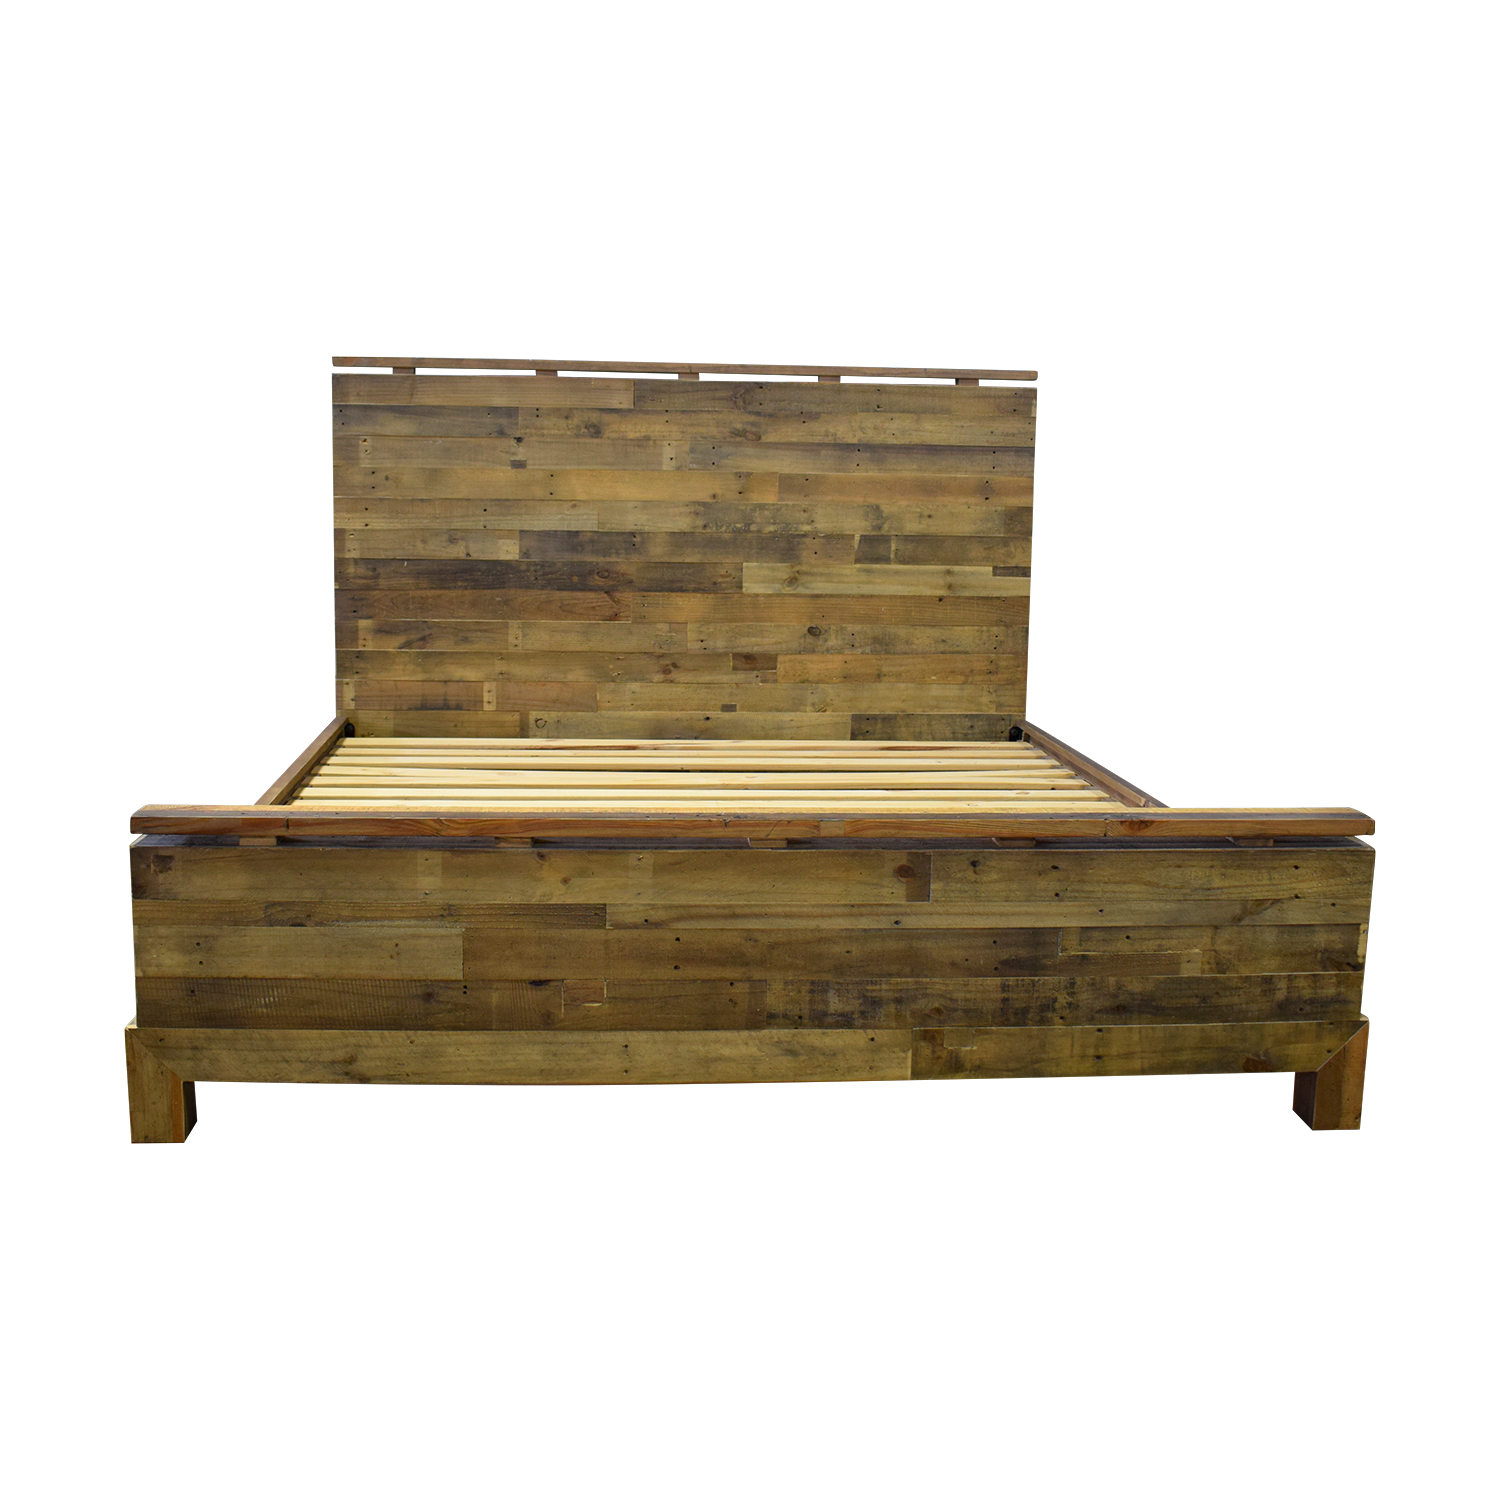 ABC Carpet & Home ABC Carpet & Home Rustic Wood King Bed Frame used